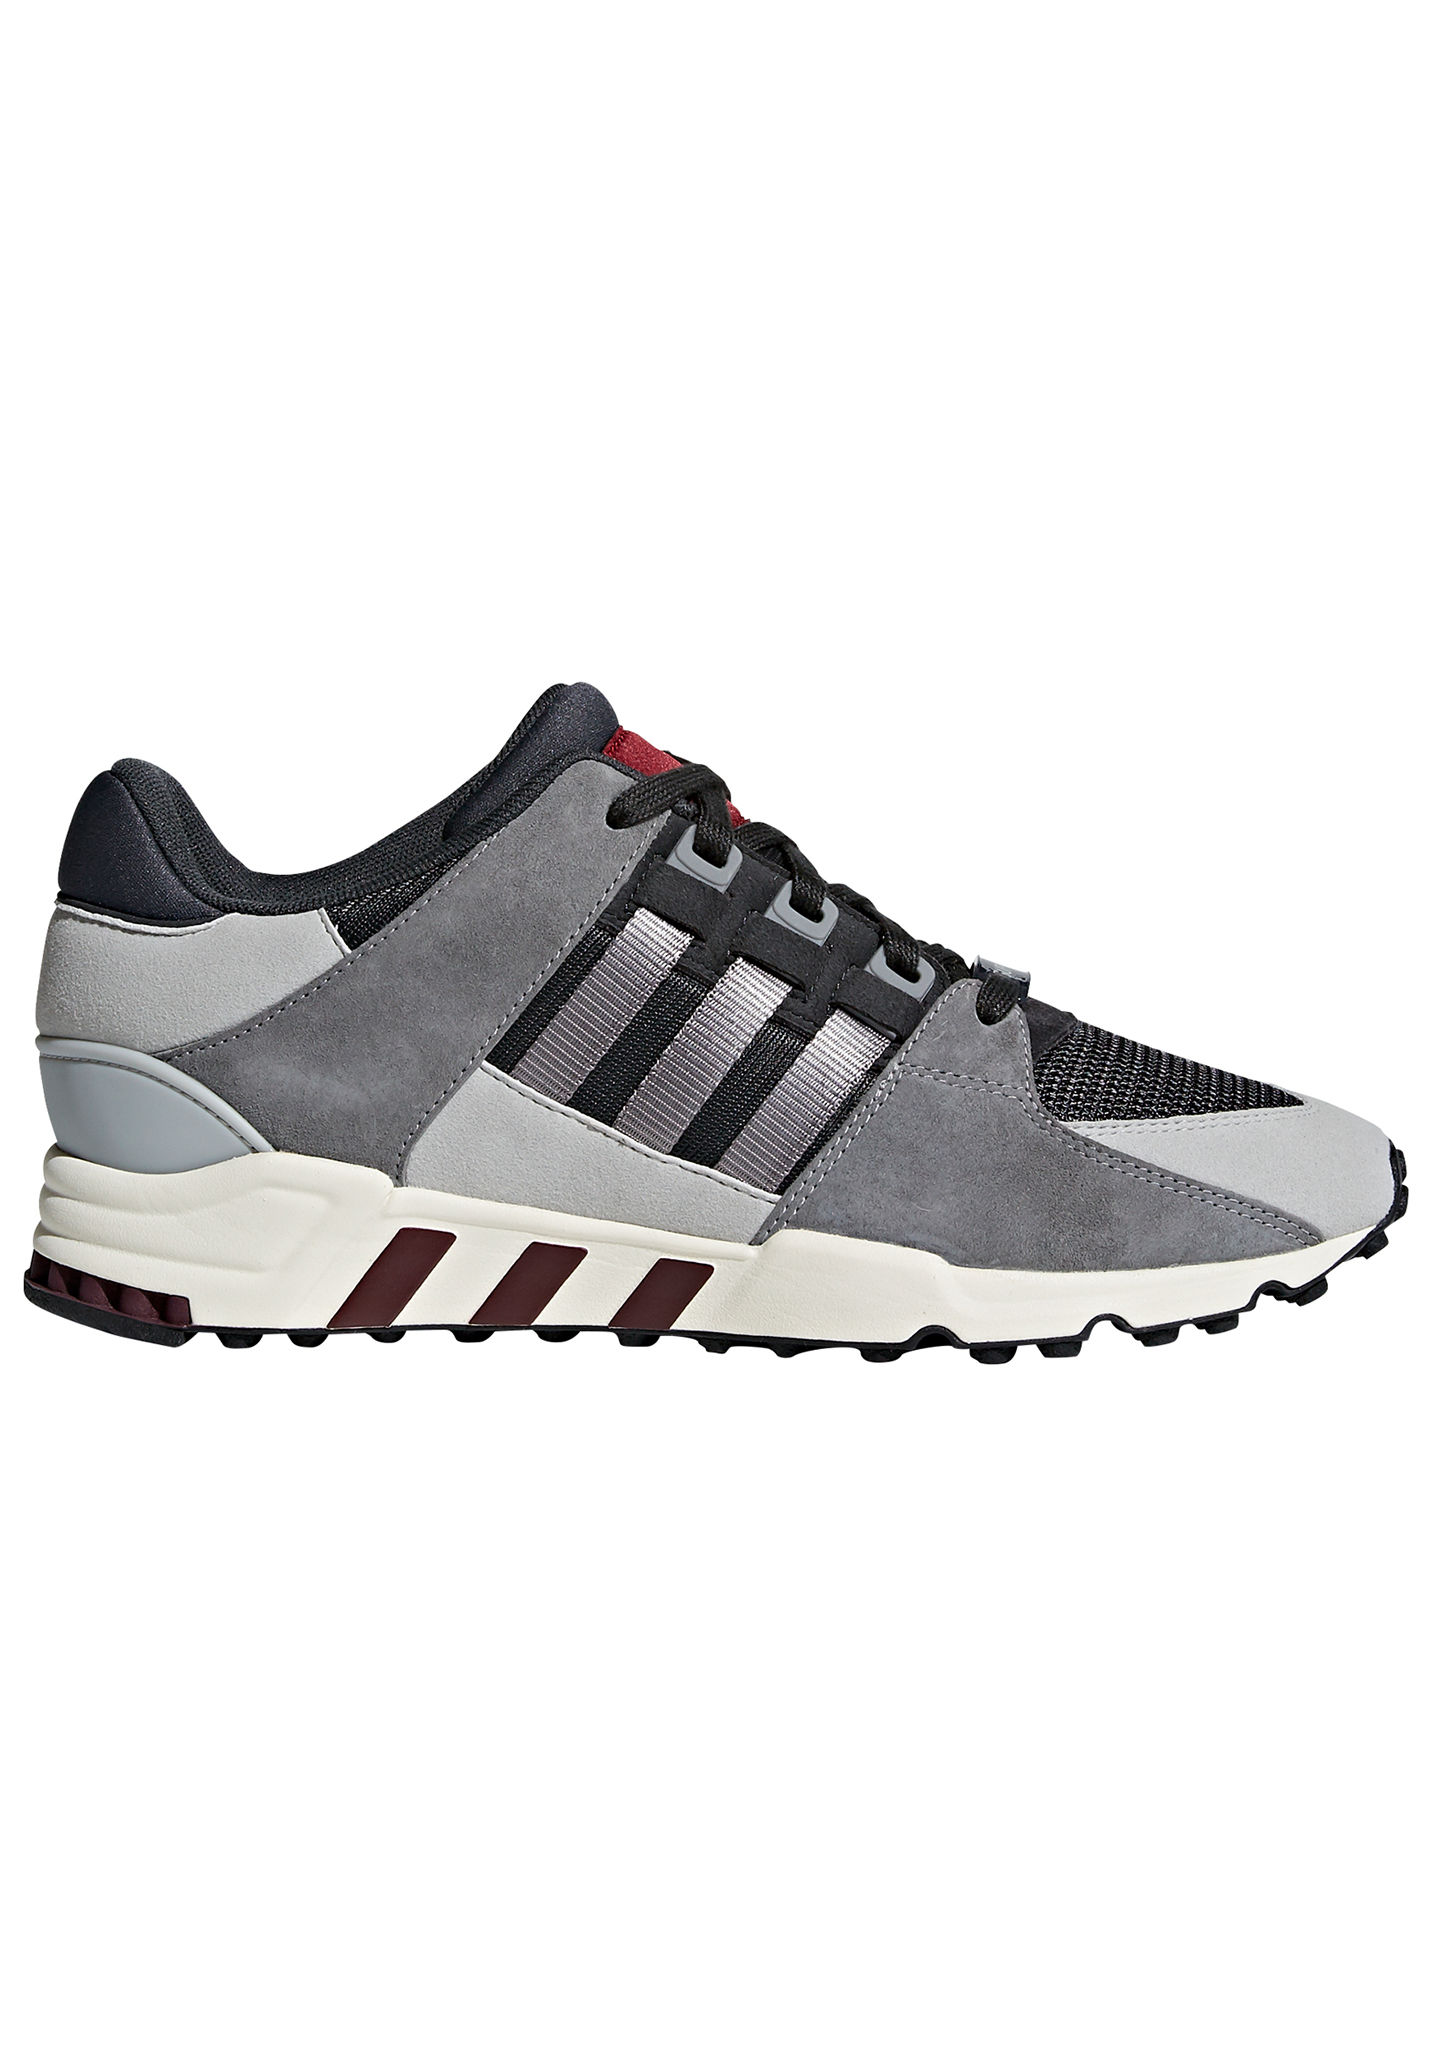 check out 6643c 57743 ADIDAS ORIGINALS Eqt Support Rf - Sneakers for Men - Grey - Planet Sports